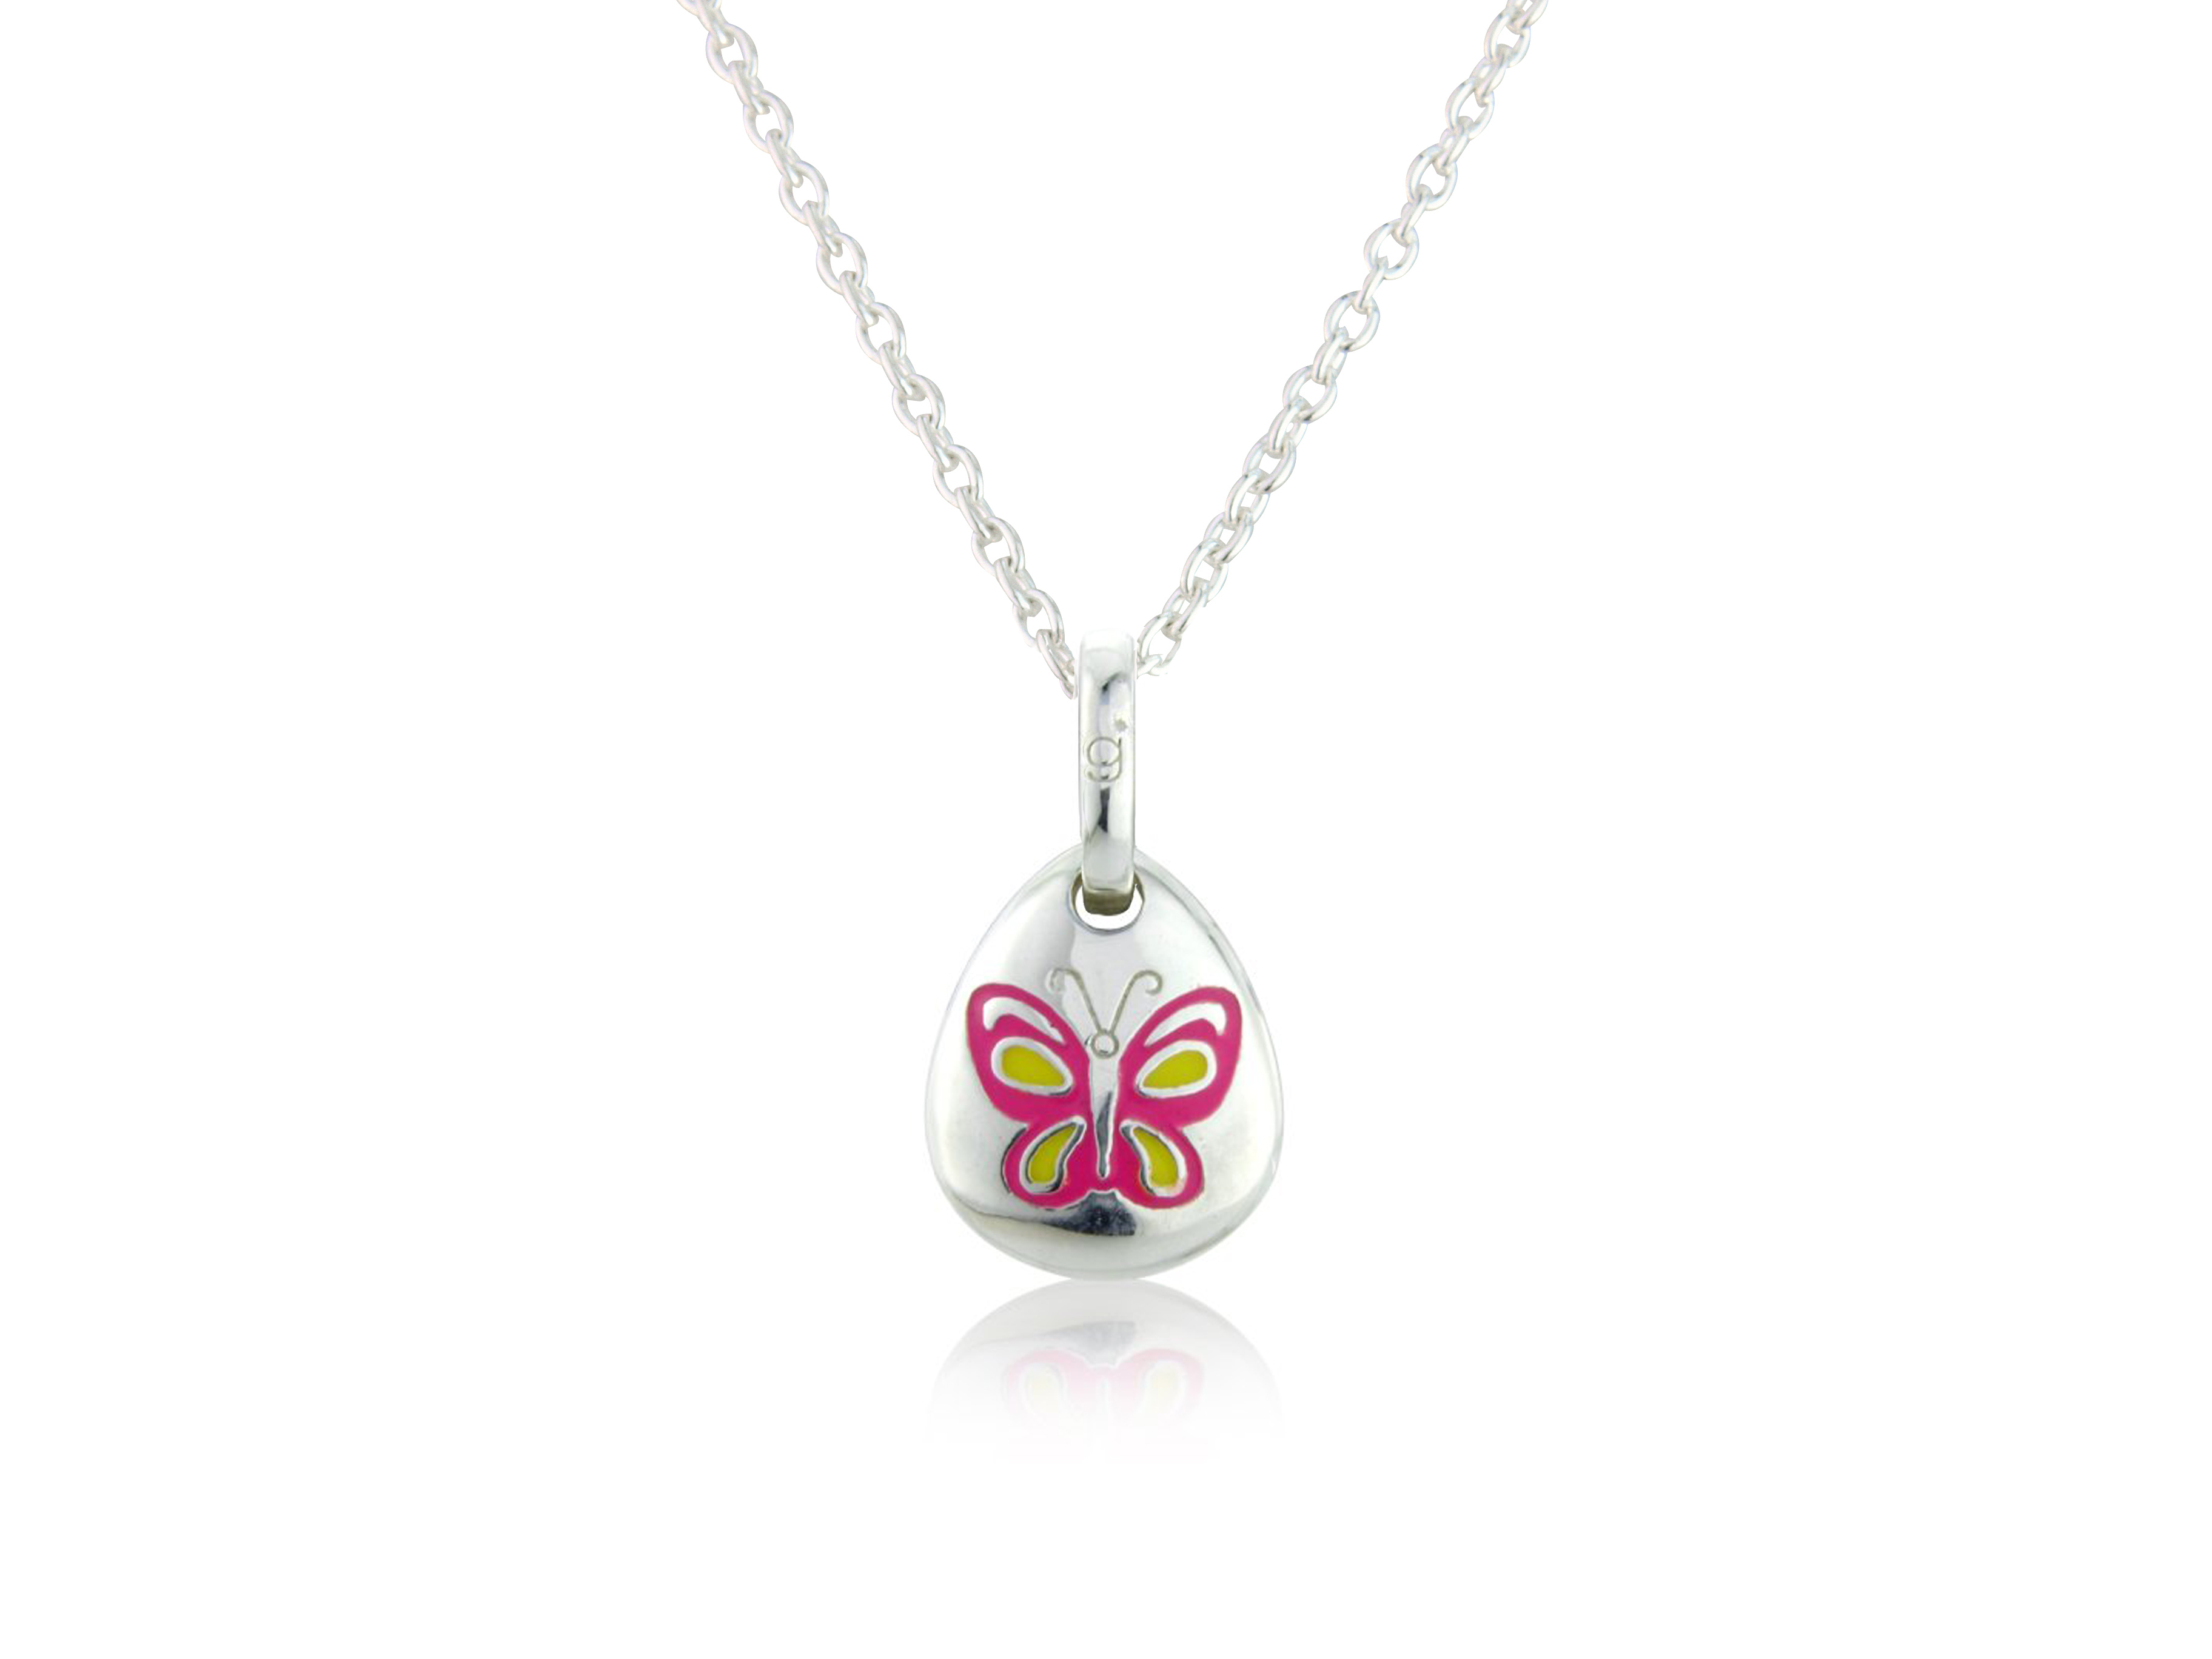 Butterfly Pebble Pendant